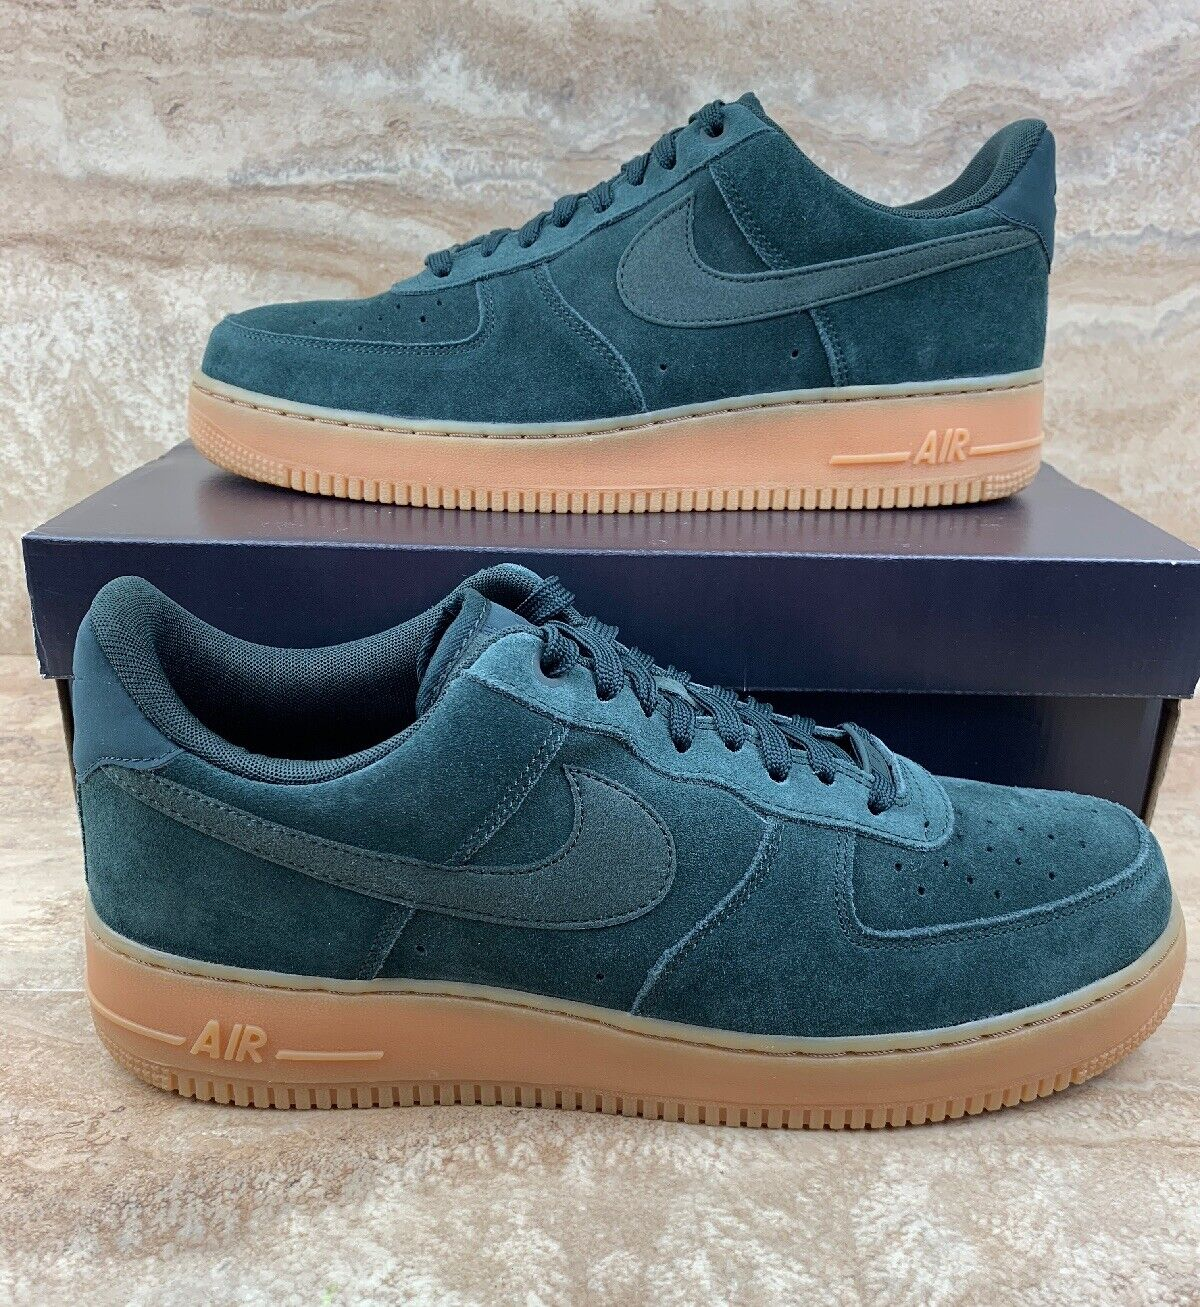 Nike Air Force 1 '07 LV8 Suede Mens Shoes Outdoor Green Gum